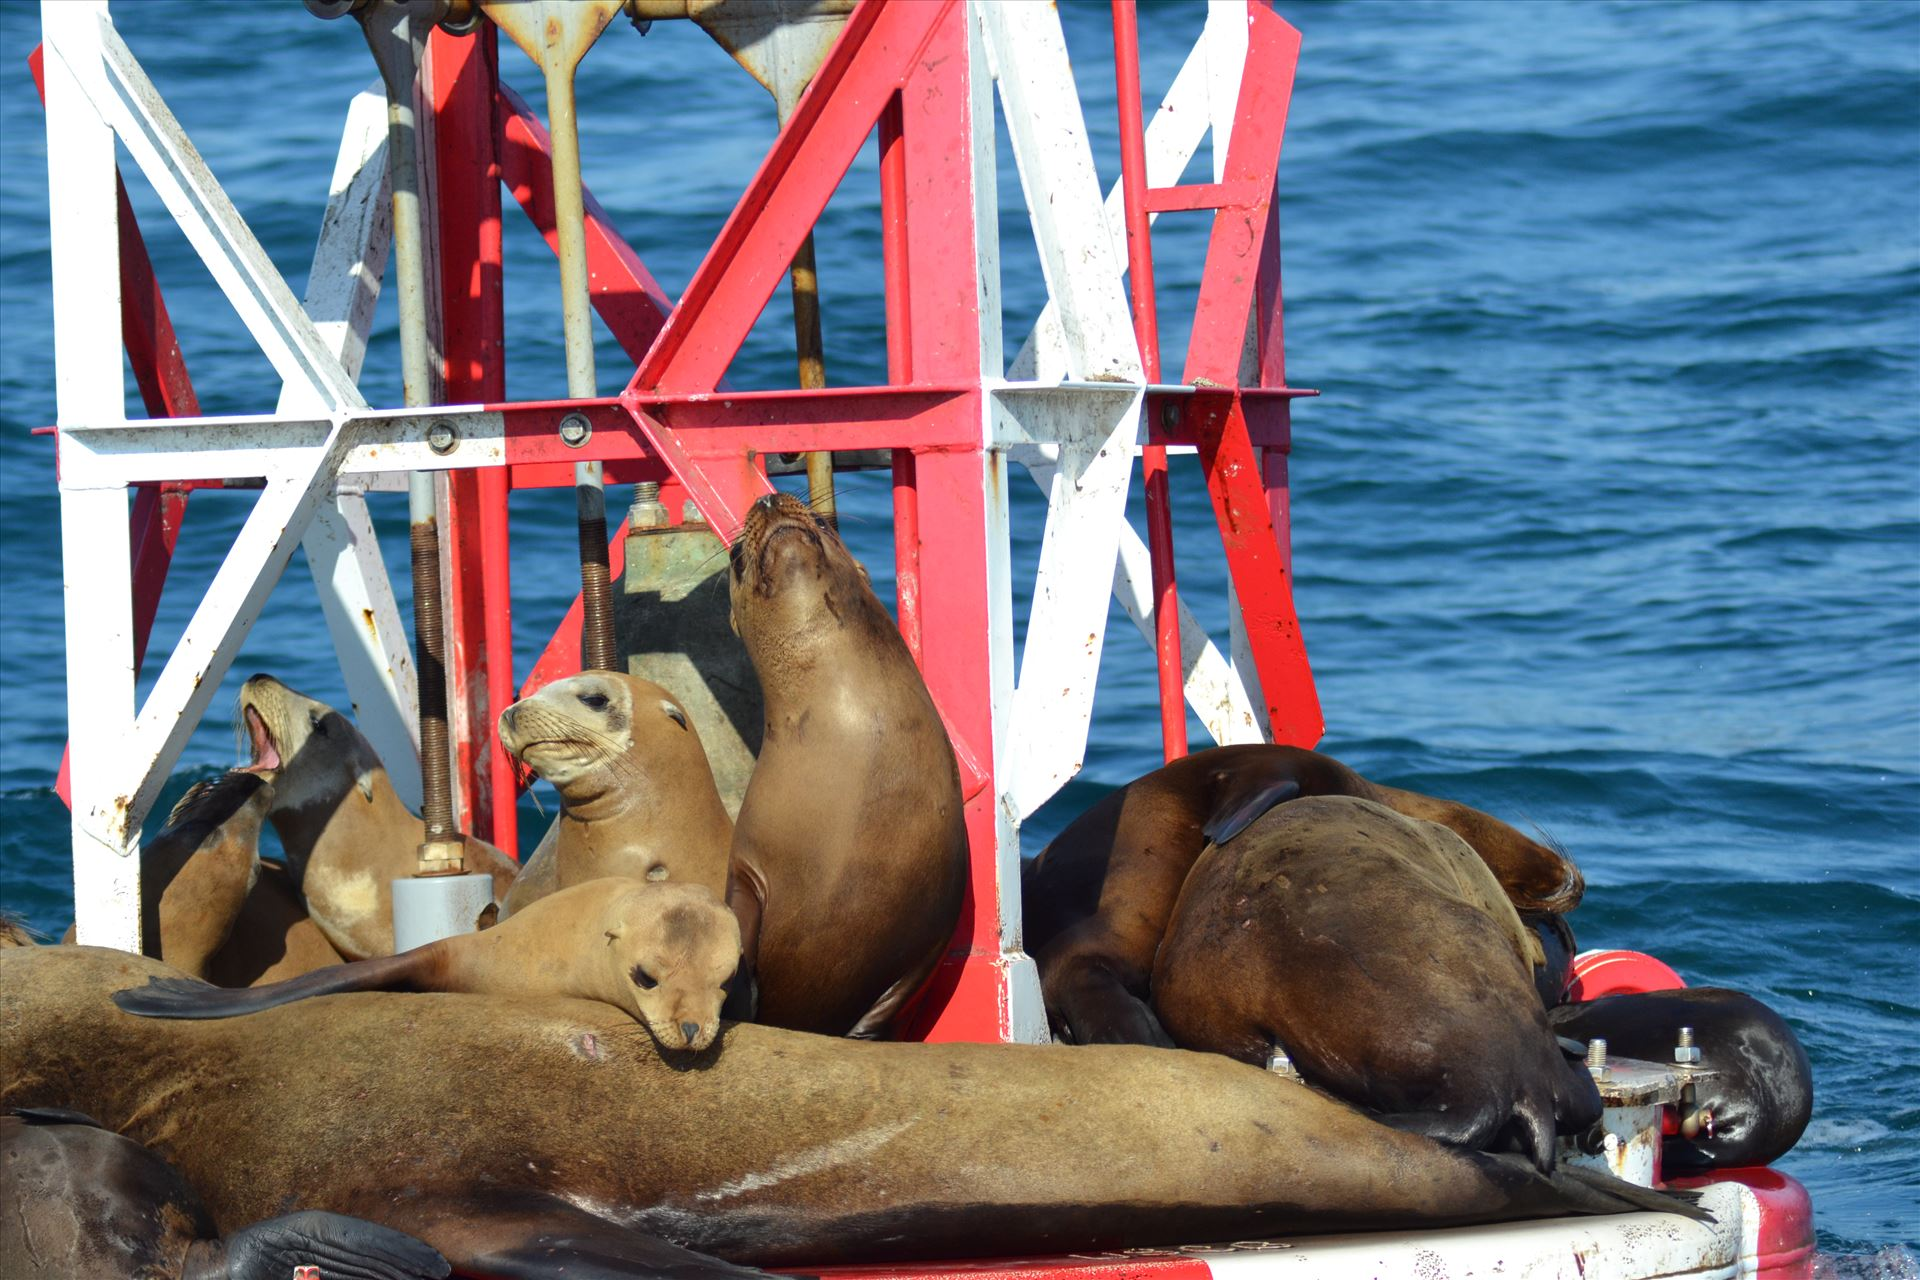 Lazy Days 2.JPG - Lazy Sea Lions emulating a vacation mindset by 405 Exposure